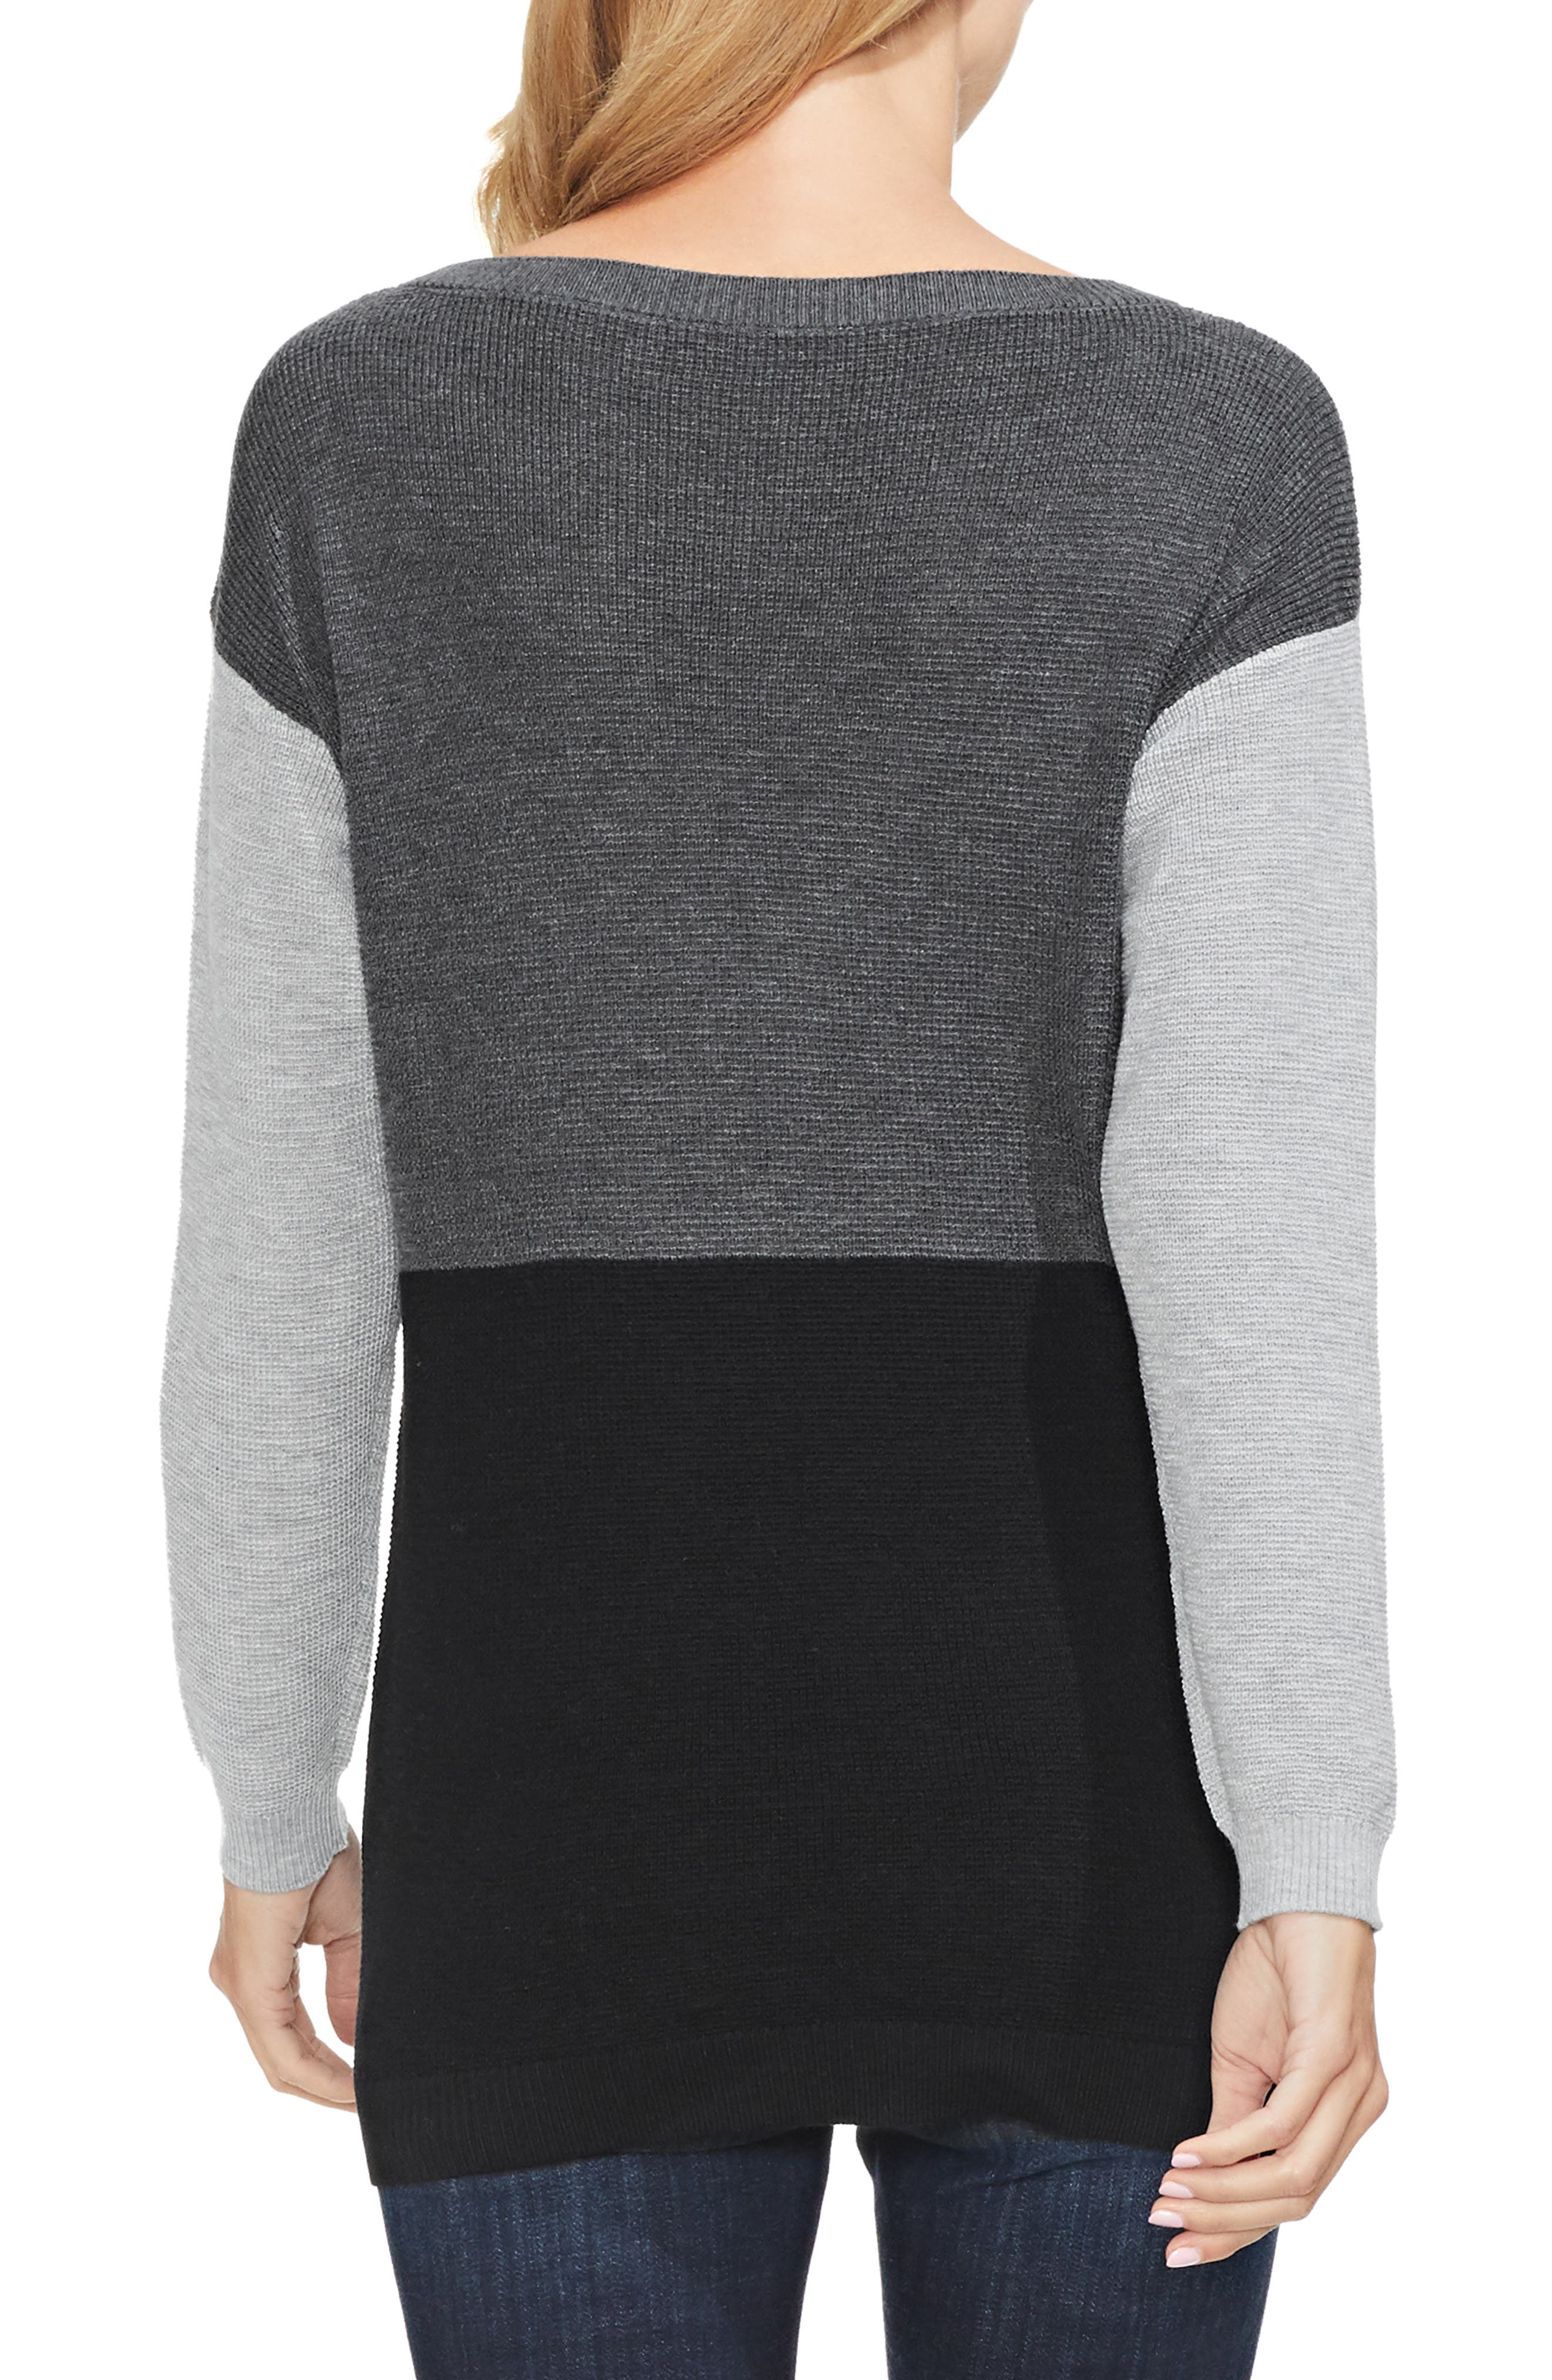 Colorblock Sweater,                             Alternate thumbnail 2, color,                             MED HEATHER GREY